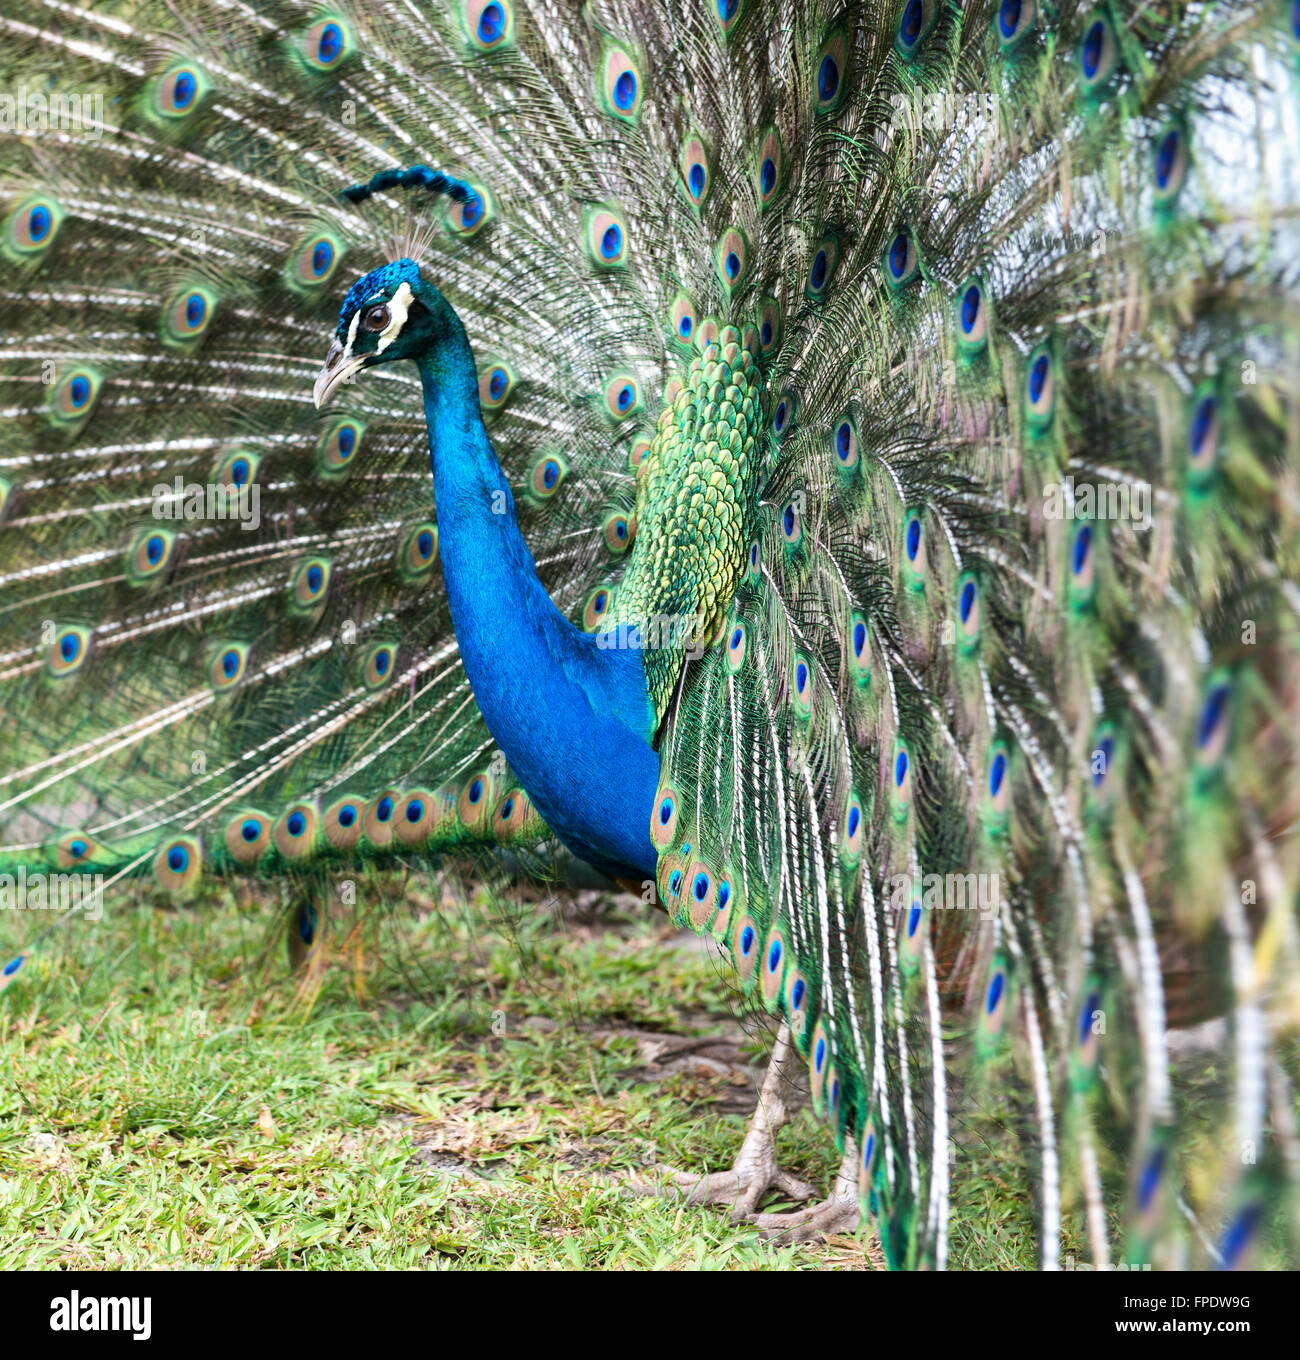 Close up side view of an iridescent blue male peacock in a courting display with its tail feathers raised in a fan Stock Photo